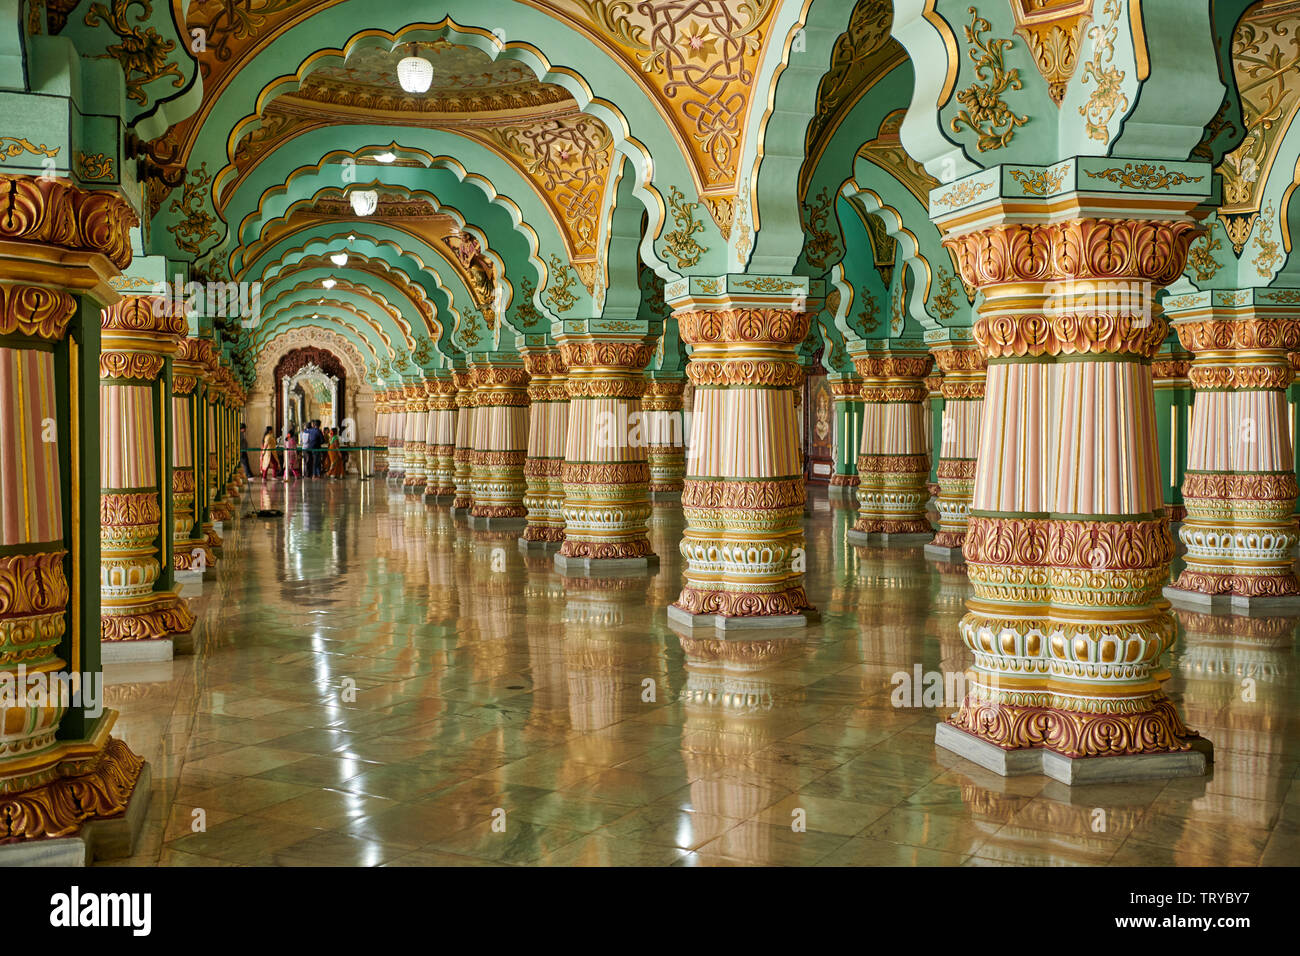 Audience hall, Public Durbar Hall, interior shot of Mysore Palace or ambavilas palace, Mysore, Hassan, Karnataka, India - Stock Image